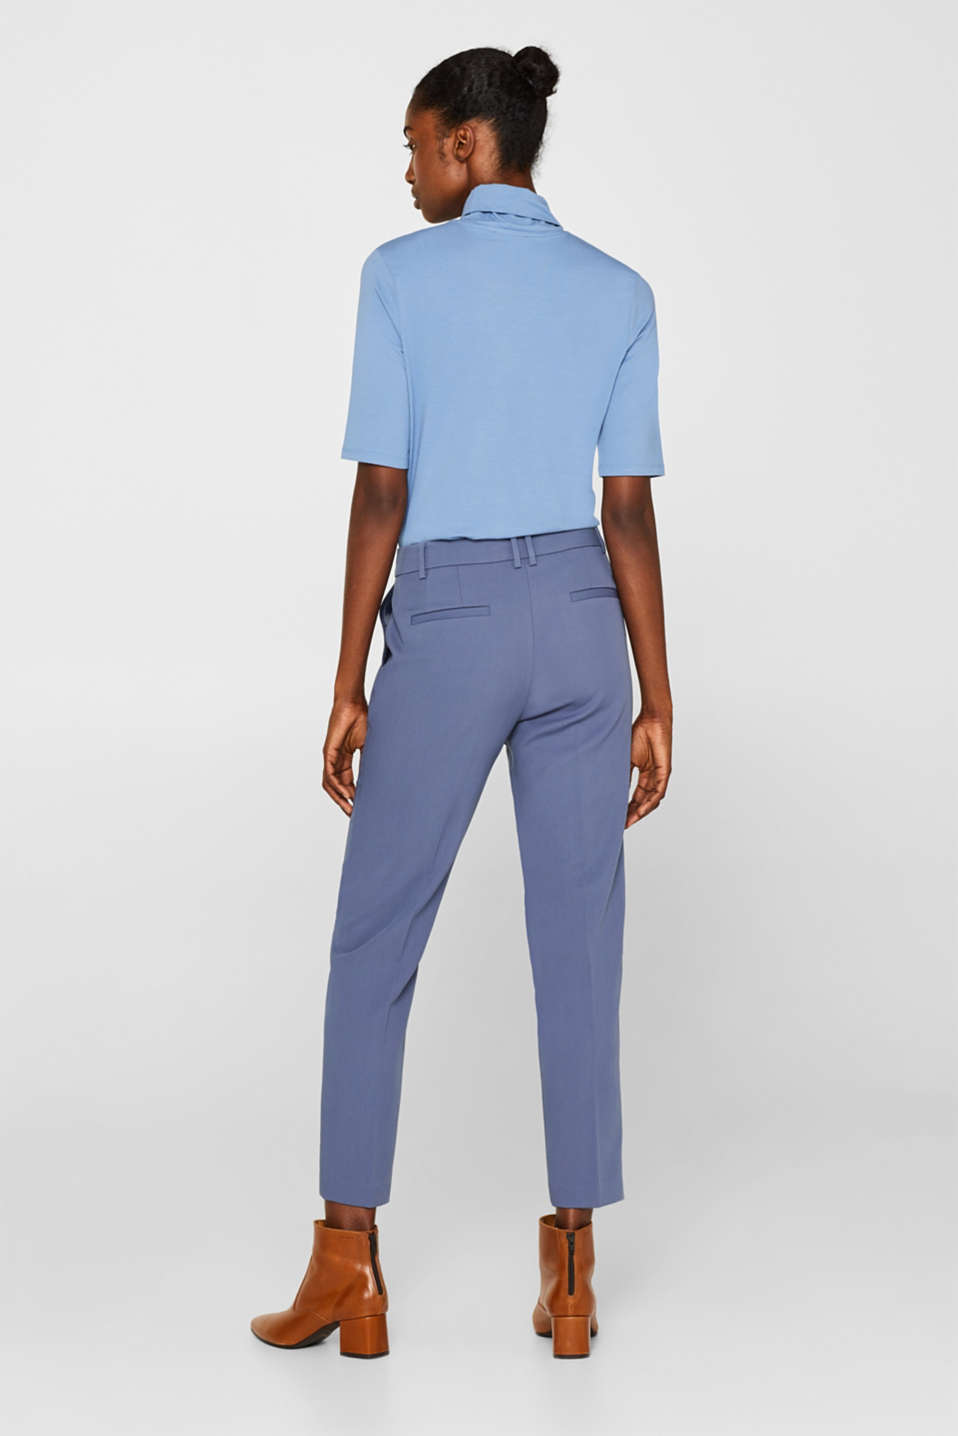 STITCHING mix + match stretch trousers with decorative stitching, GREY BLUE 2, detail image number 3